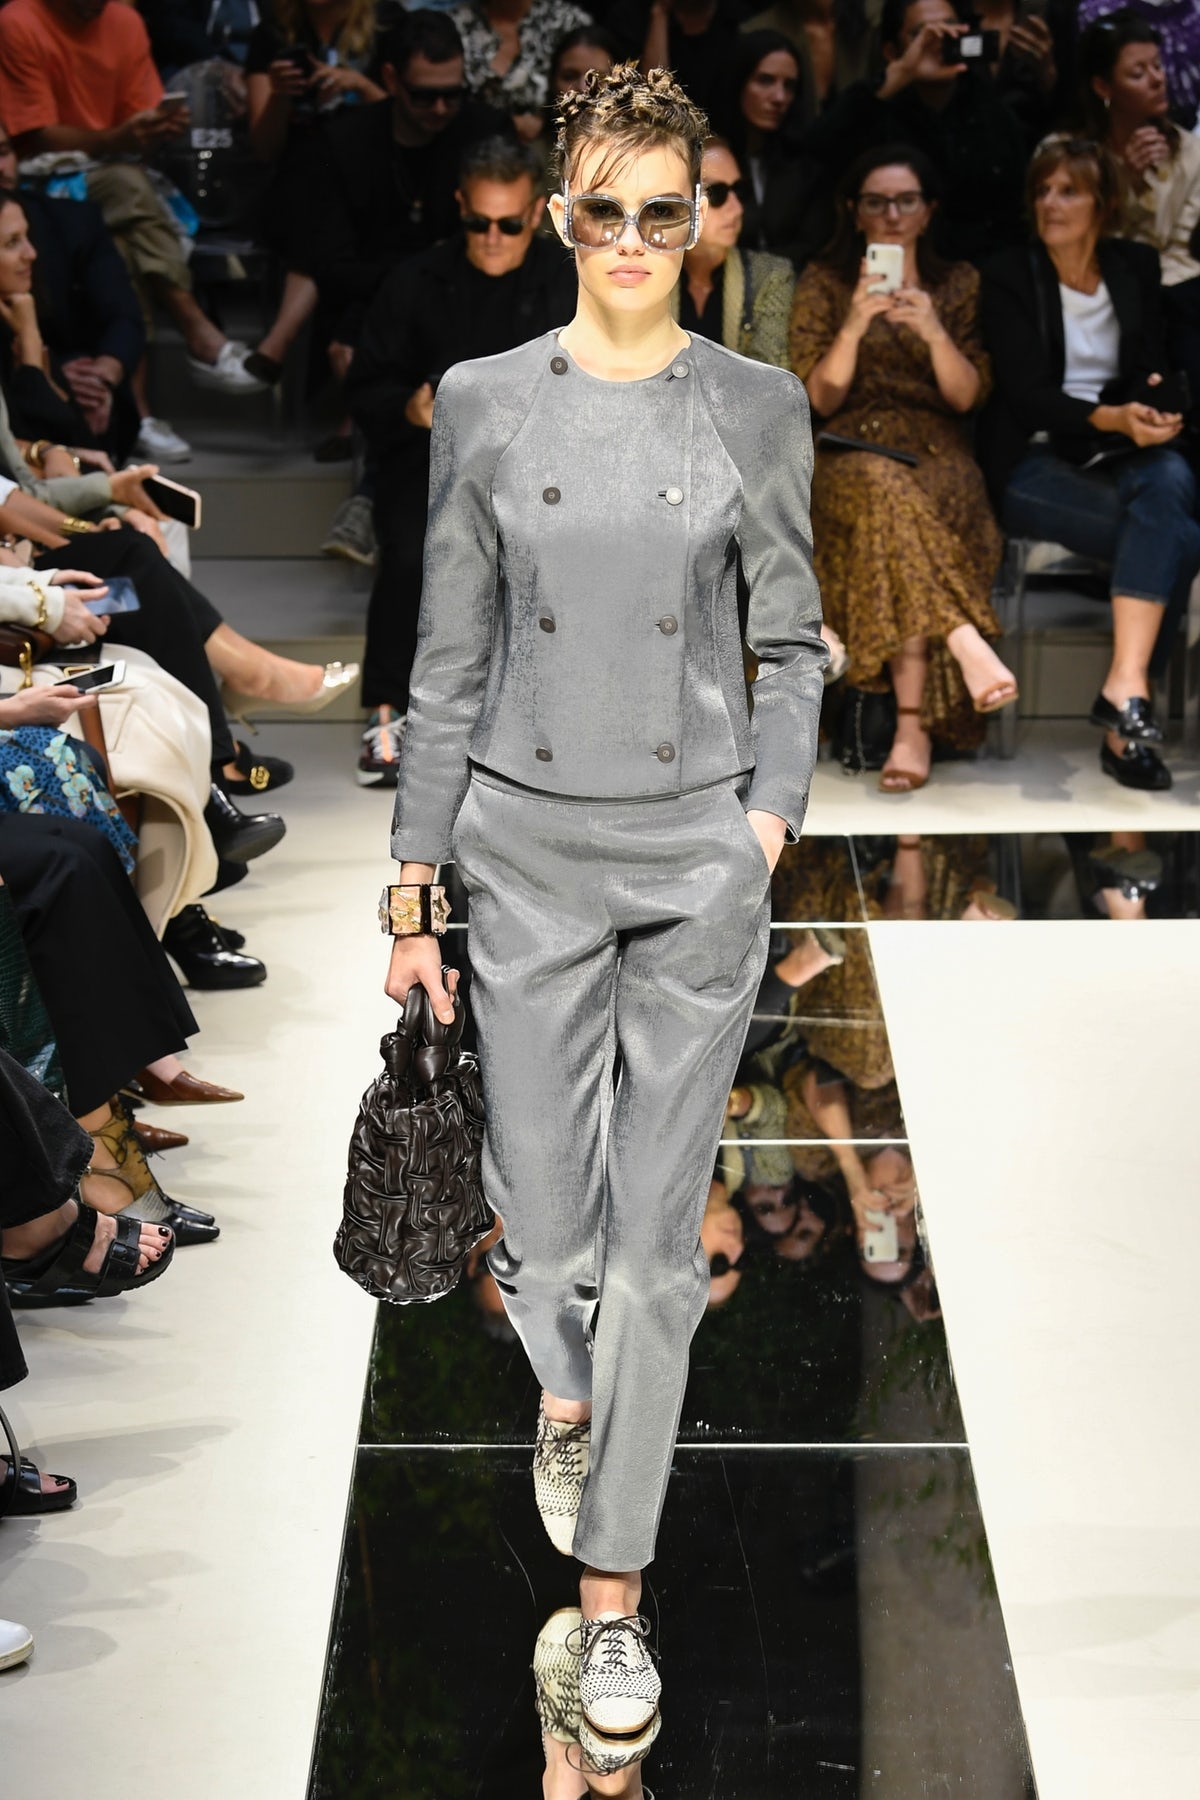 From Earth to Heaven at Giorgio Armani